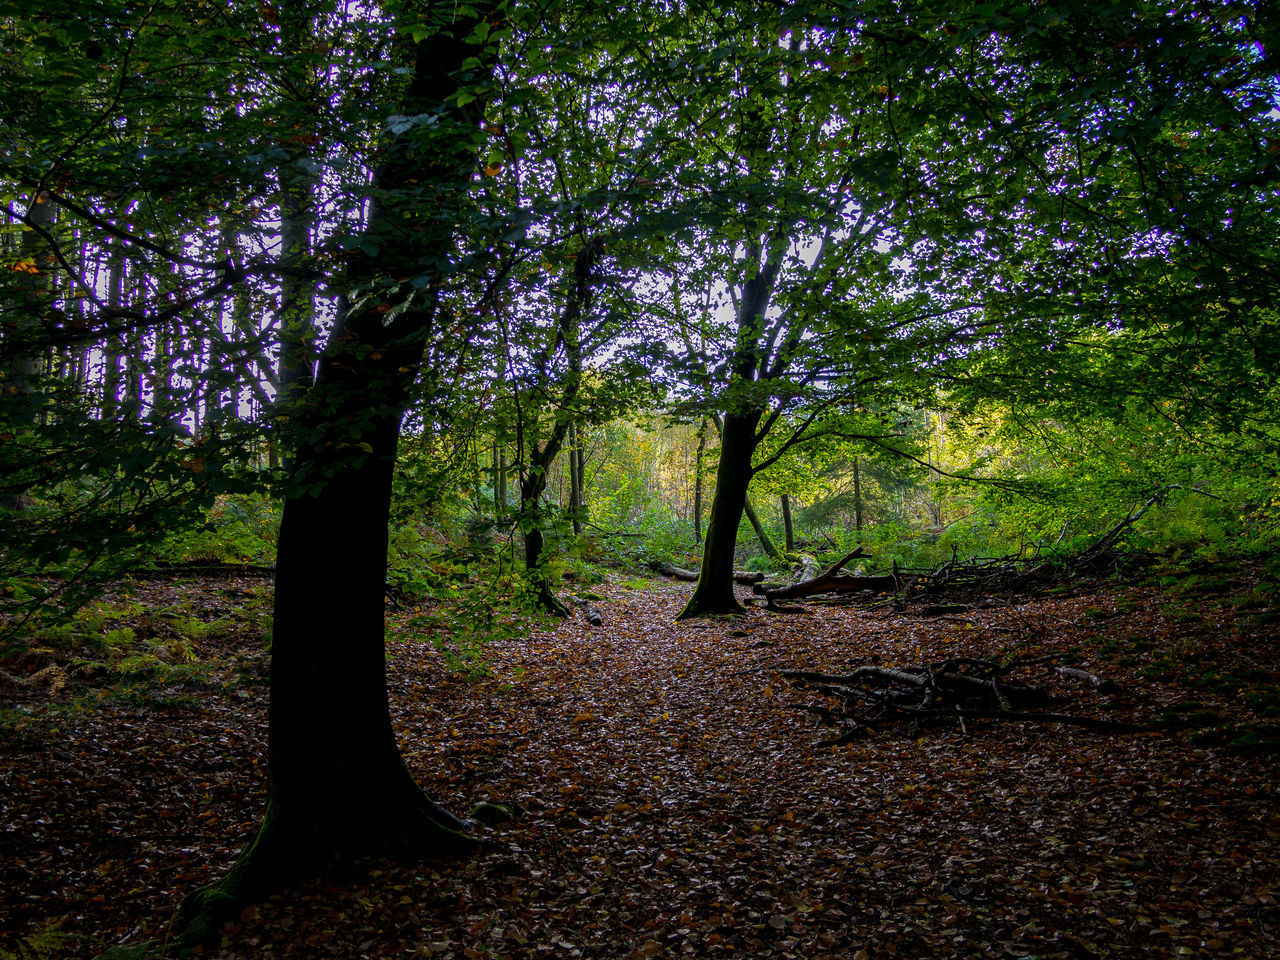 tree, plant, forest, land, nature, tree trunk, trunk, tranquility, beauty in nature, woodland, growth, no people, scenics - nature, day, outdoors, tranquil scene, non-urban scene, landscape, environment, sunlight